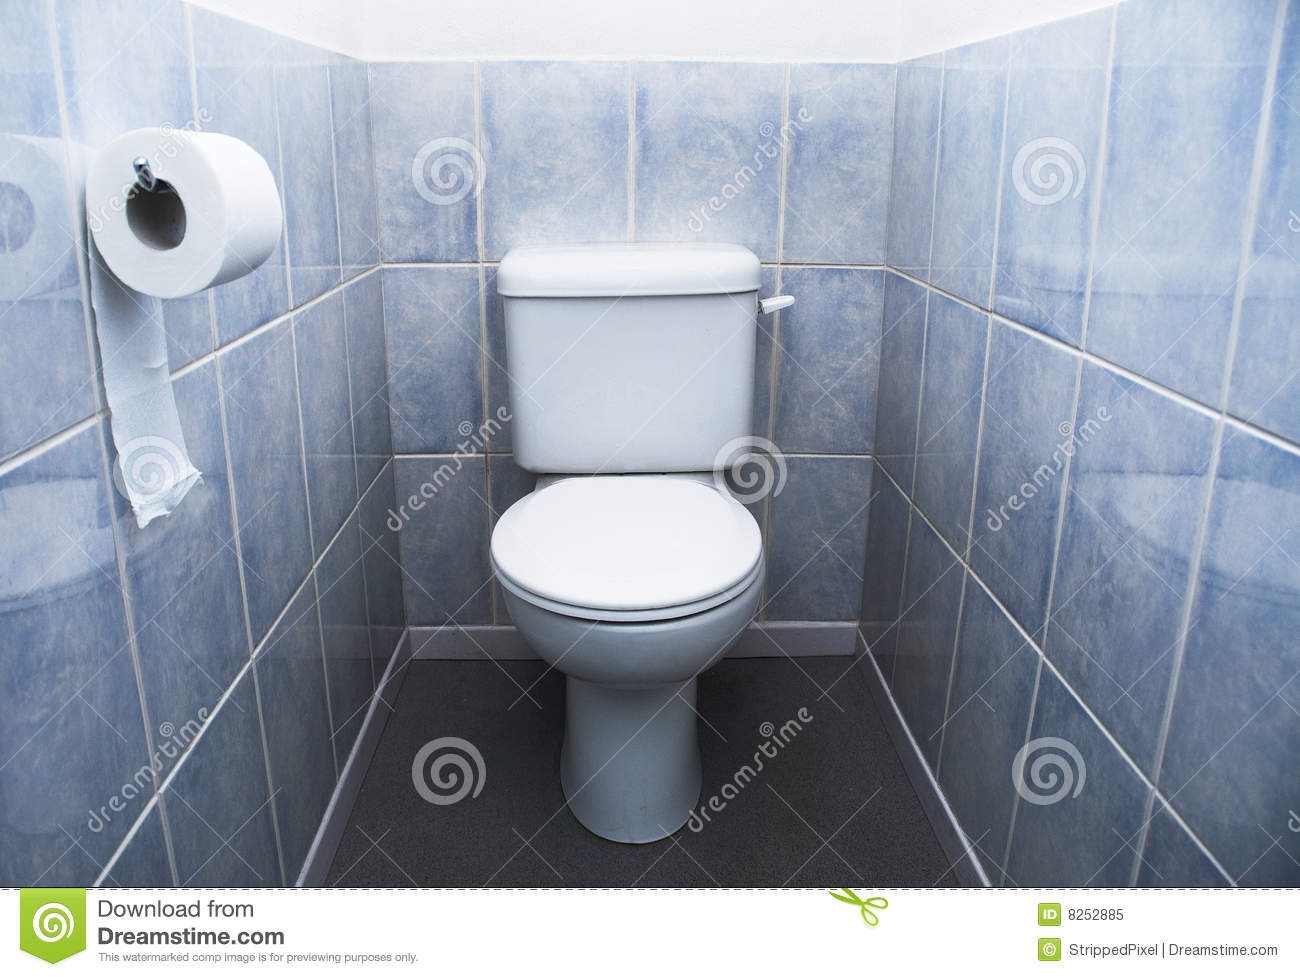 Toilet With Aqua Blue Tiles Stock Image - Image of contemporary ...